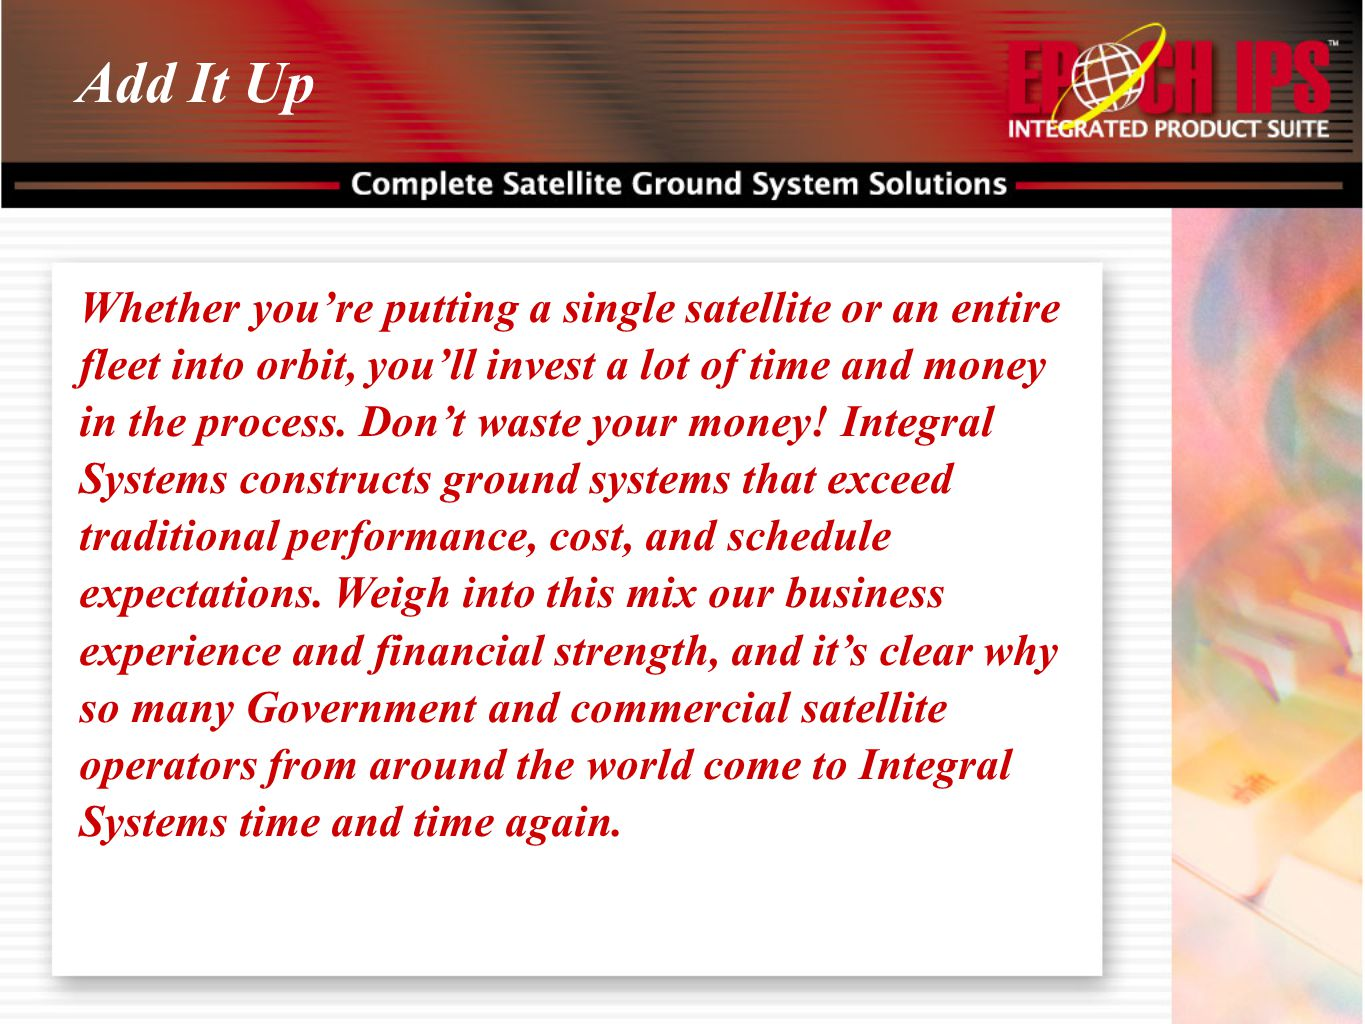 Whether you're putting a single satellite or an entire fleet into orbit, you'll invest a lot of time and money in the process. Don't waste your money!